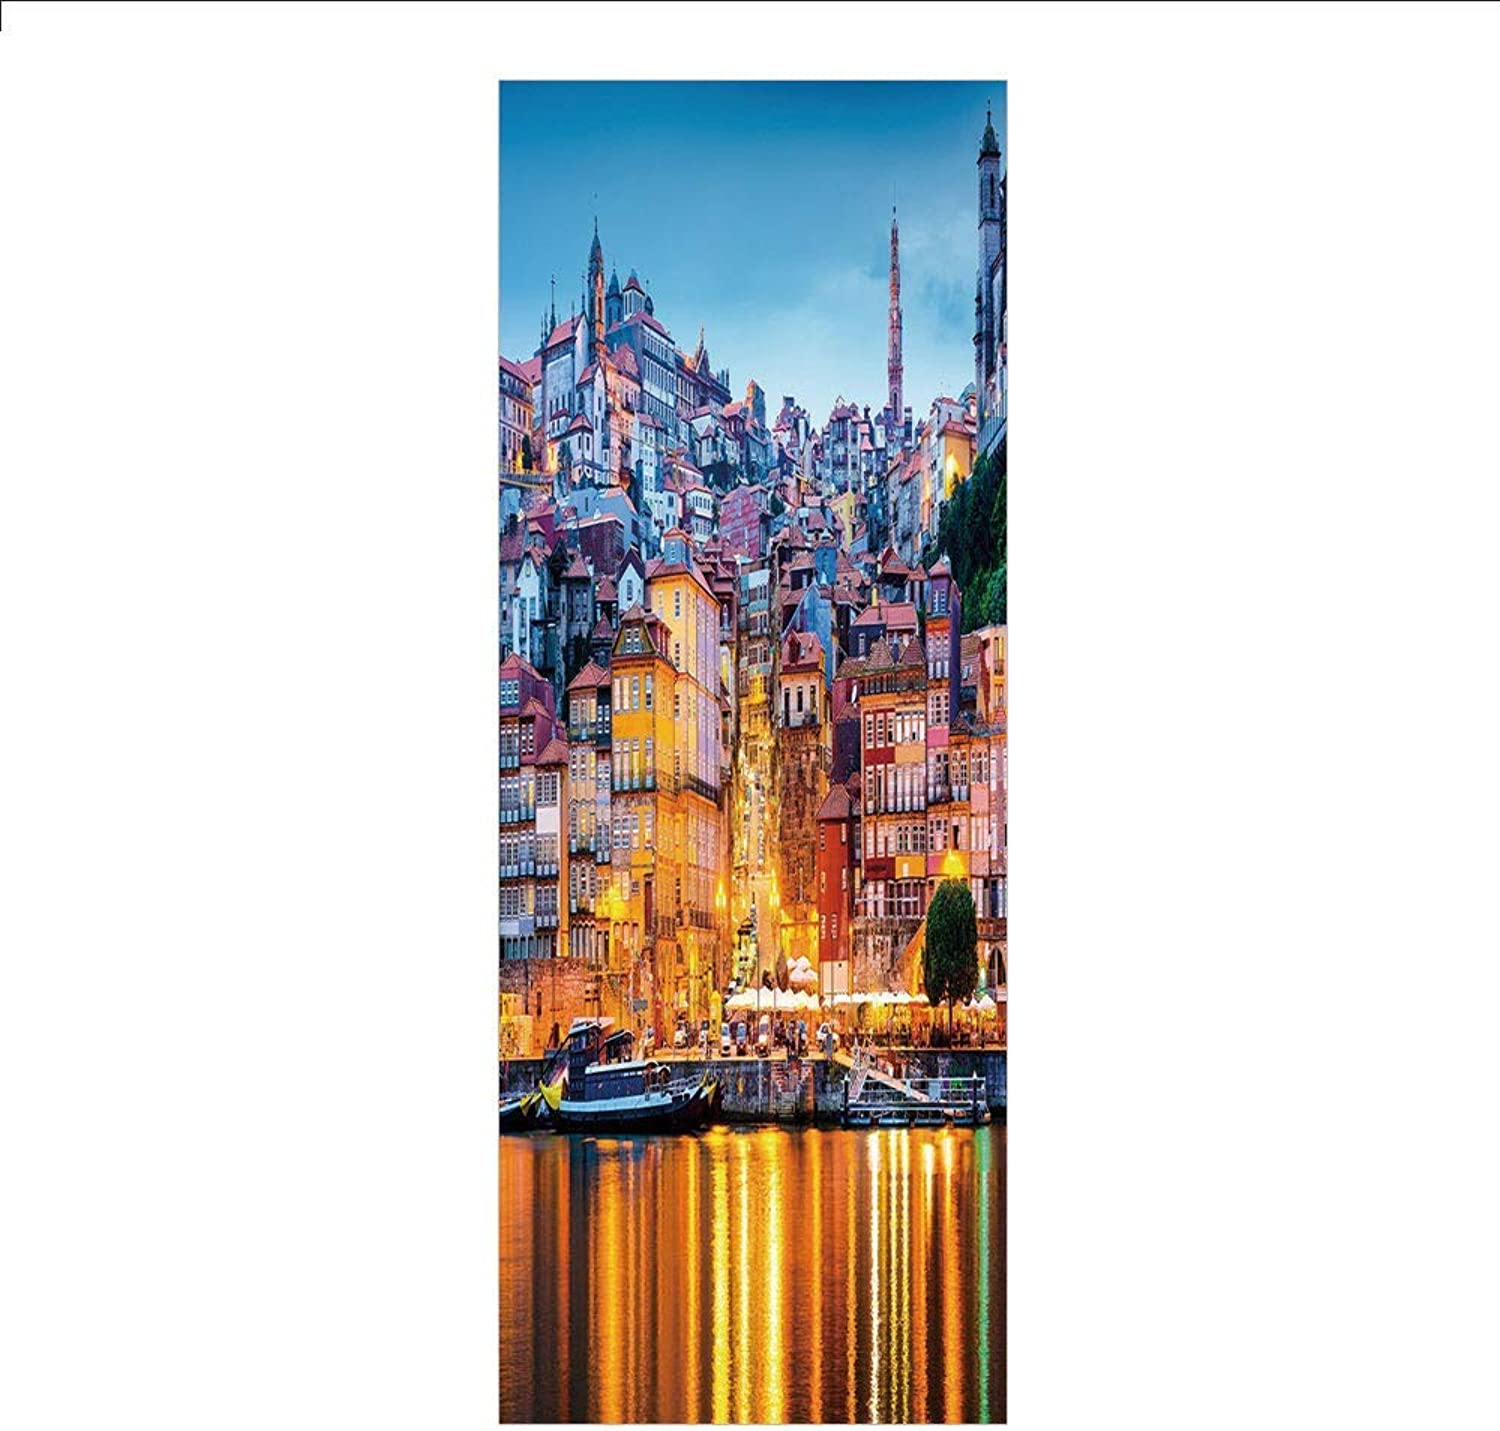 Yaoni 3D Decorative Film Privacy Window Film No Glue,European,Medieval Town Coast Portuguese Porto Old City Historical Twilight Scenery Decorative,Ginger Light bluee,for Home&Office